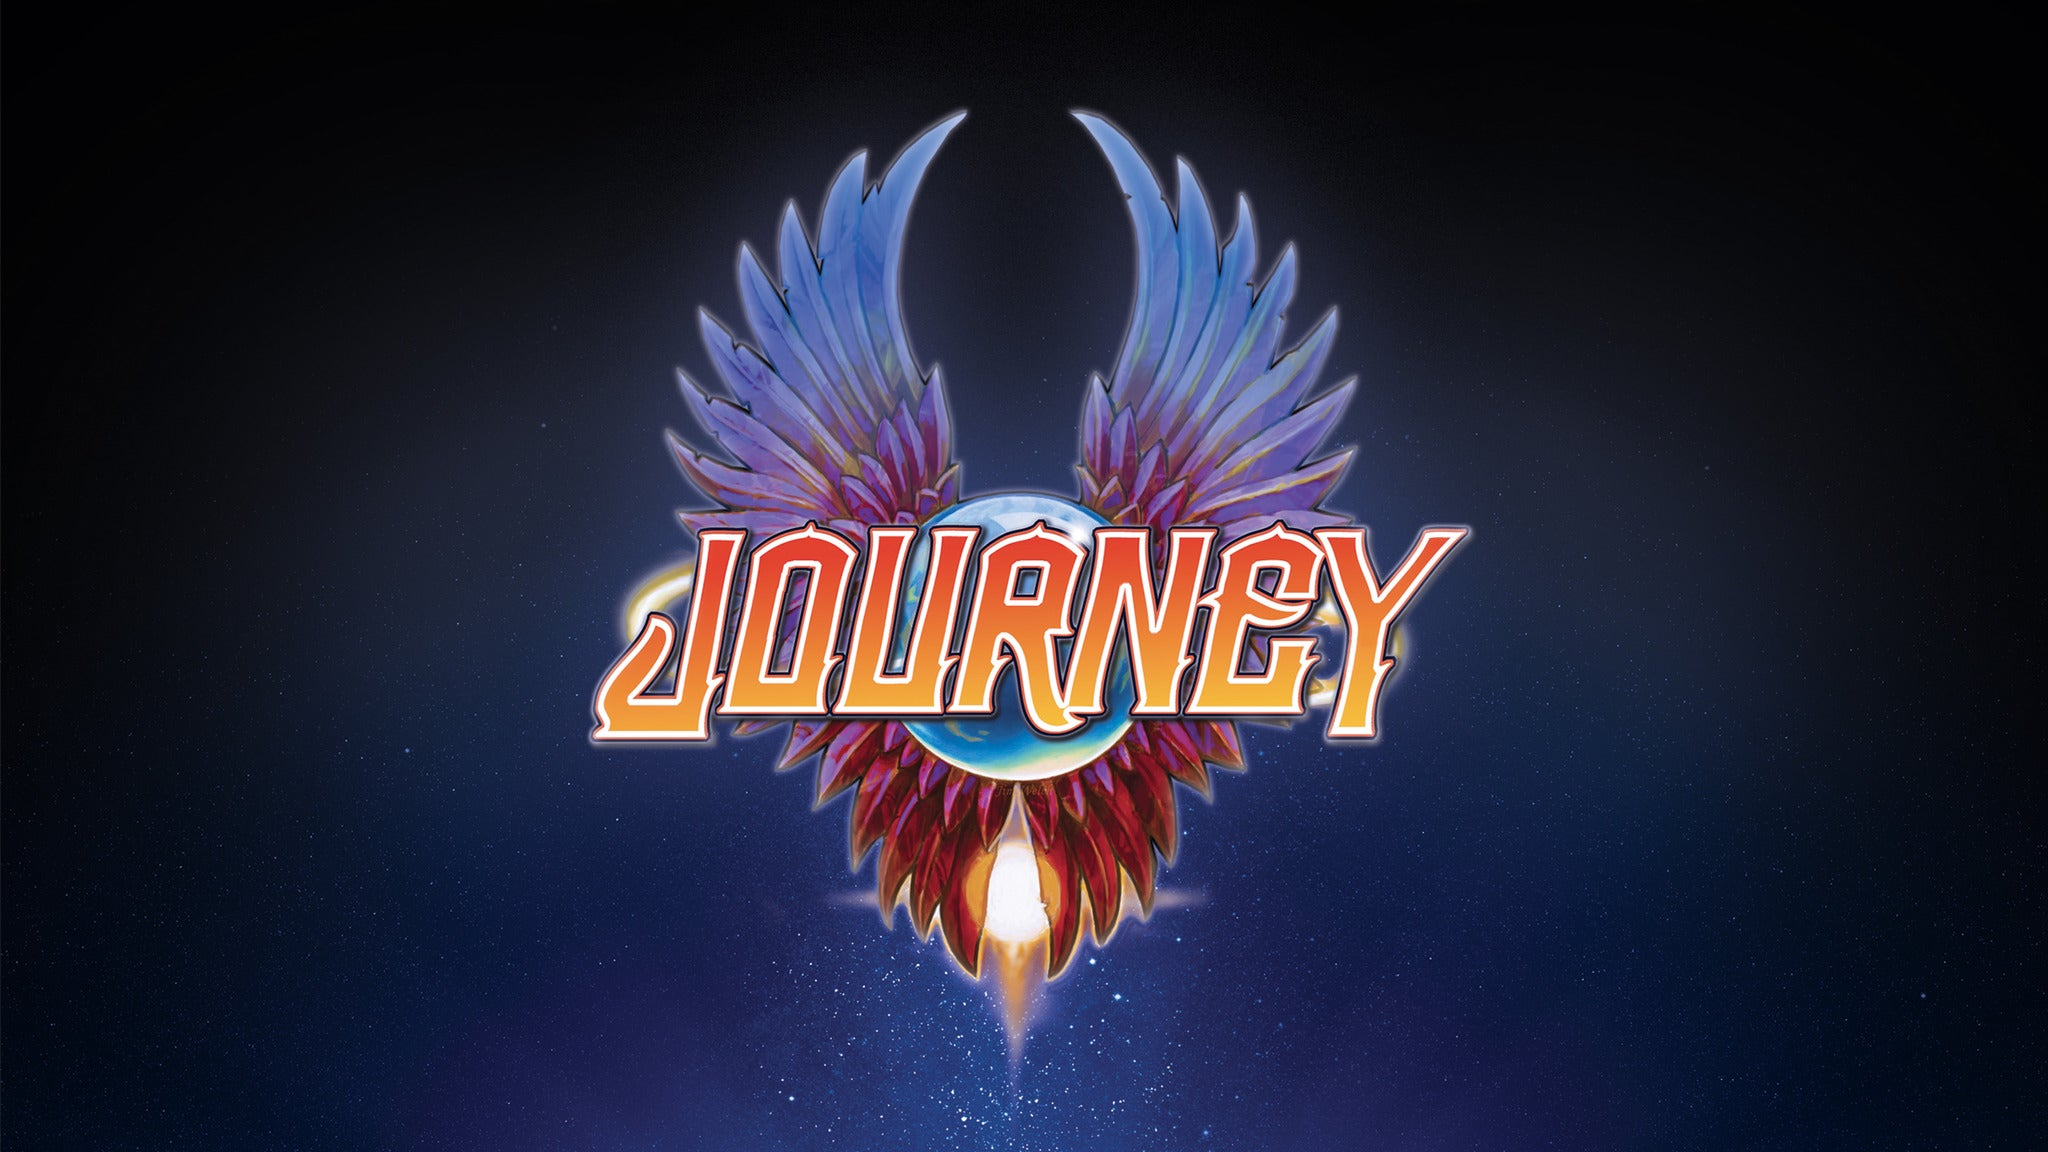 Live Nation Presents Journey / Def Leppard at Verizon Arena